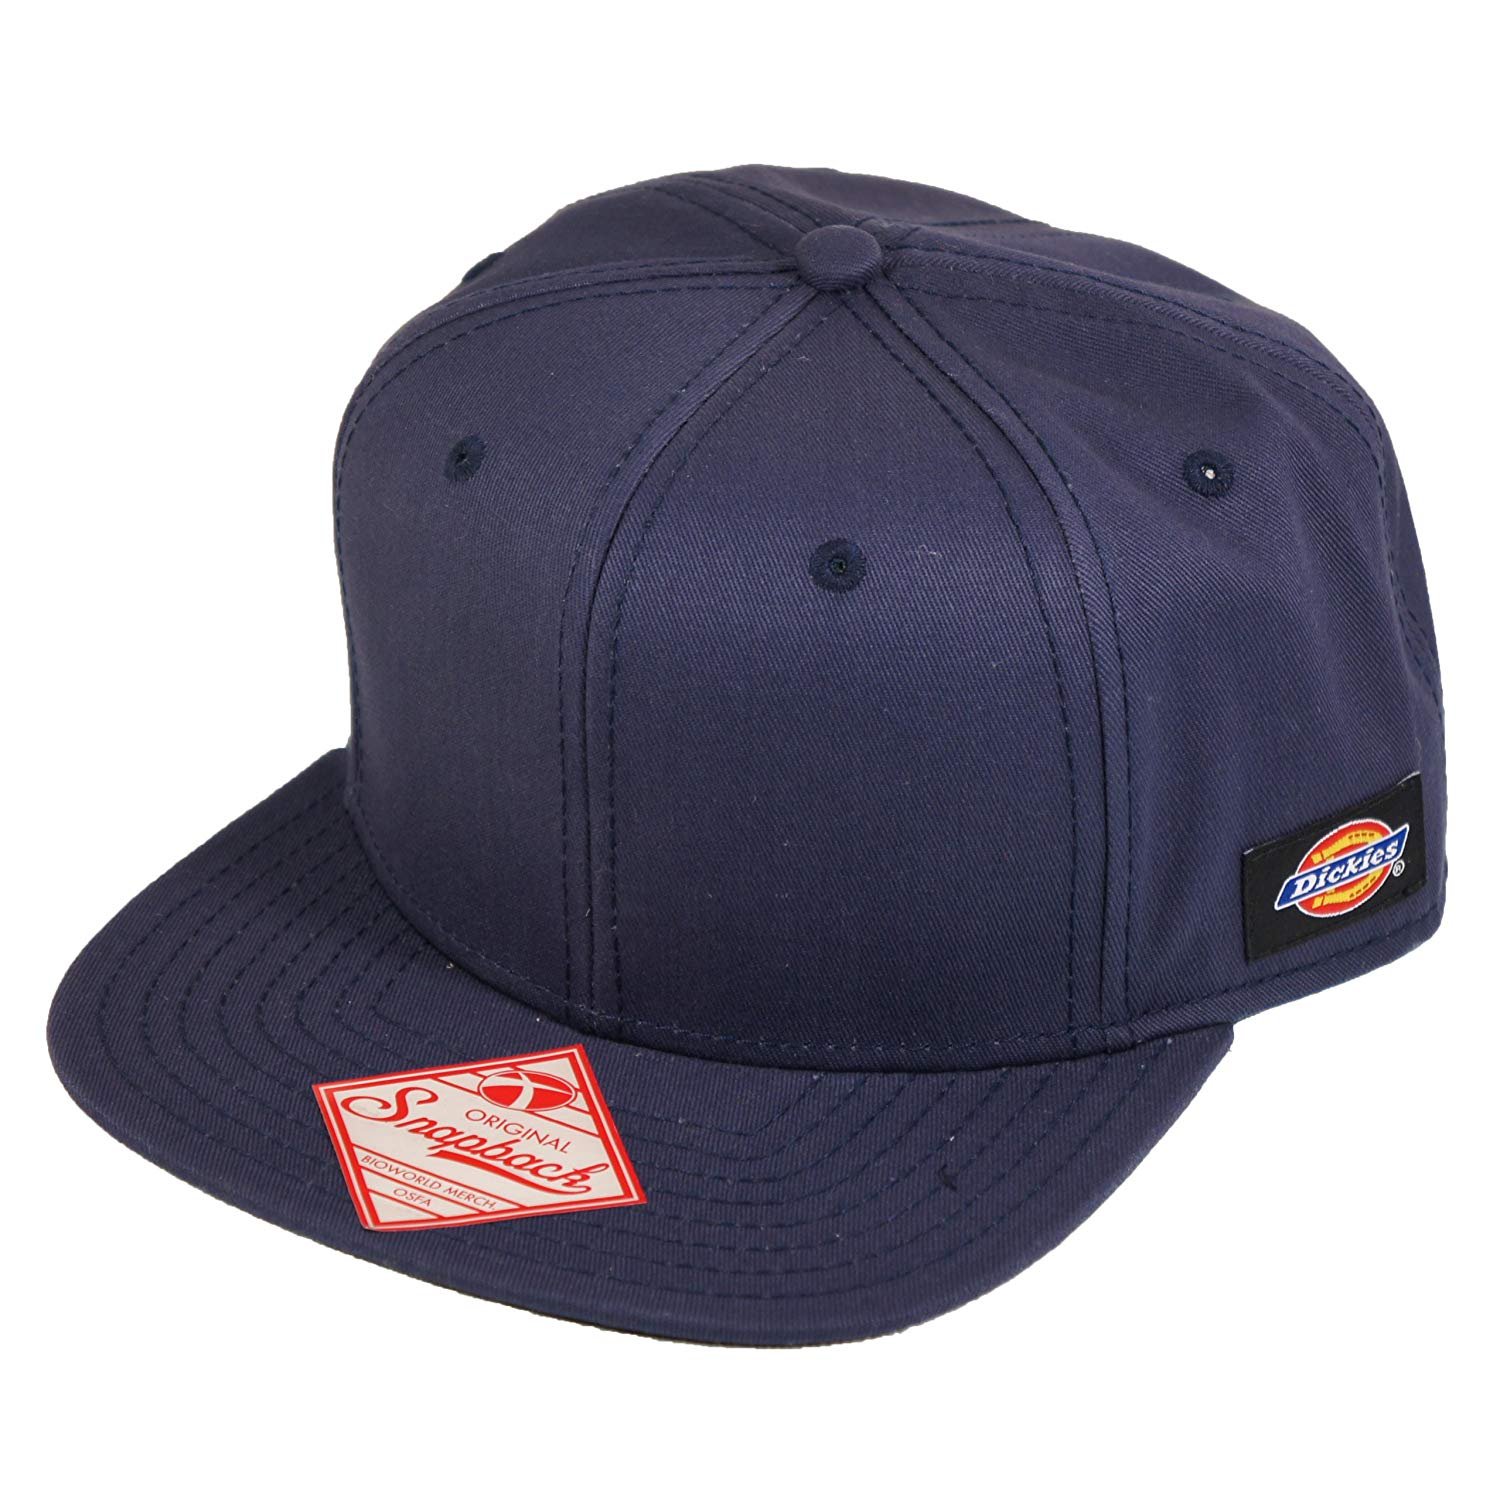 d719ca00 Cheap Dickies Hat, find Dickies Hat deals on line at Alibaba.com